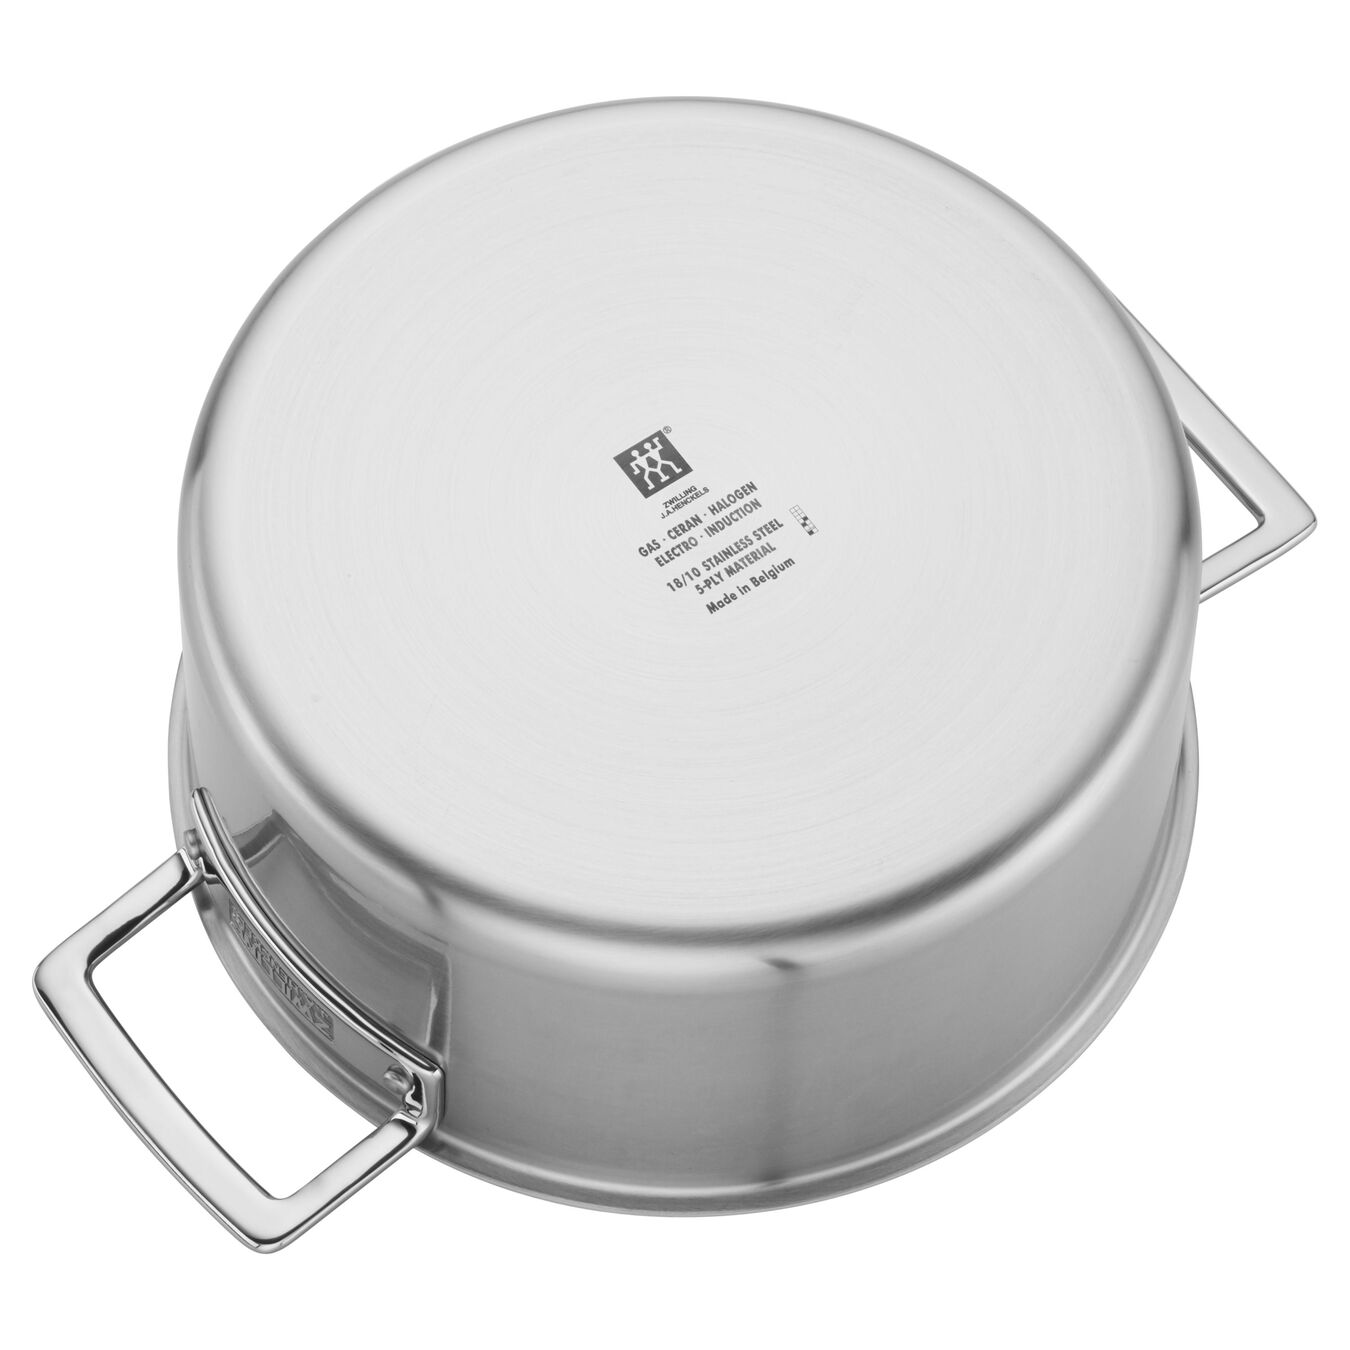 5.25 l 18/10 Stainless Steel Stock pot,,large 4